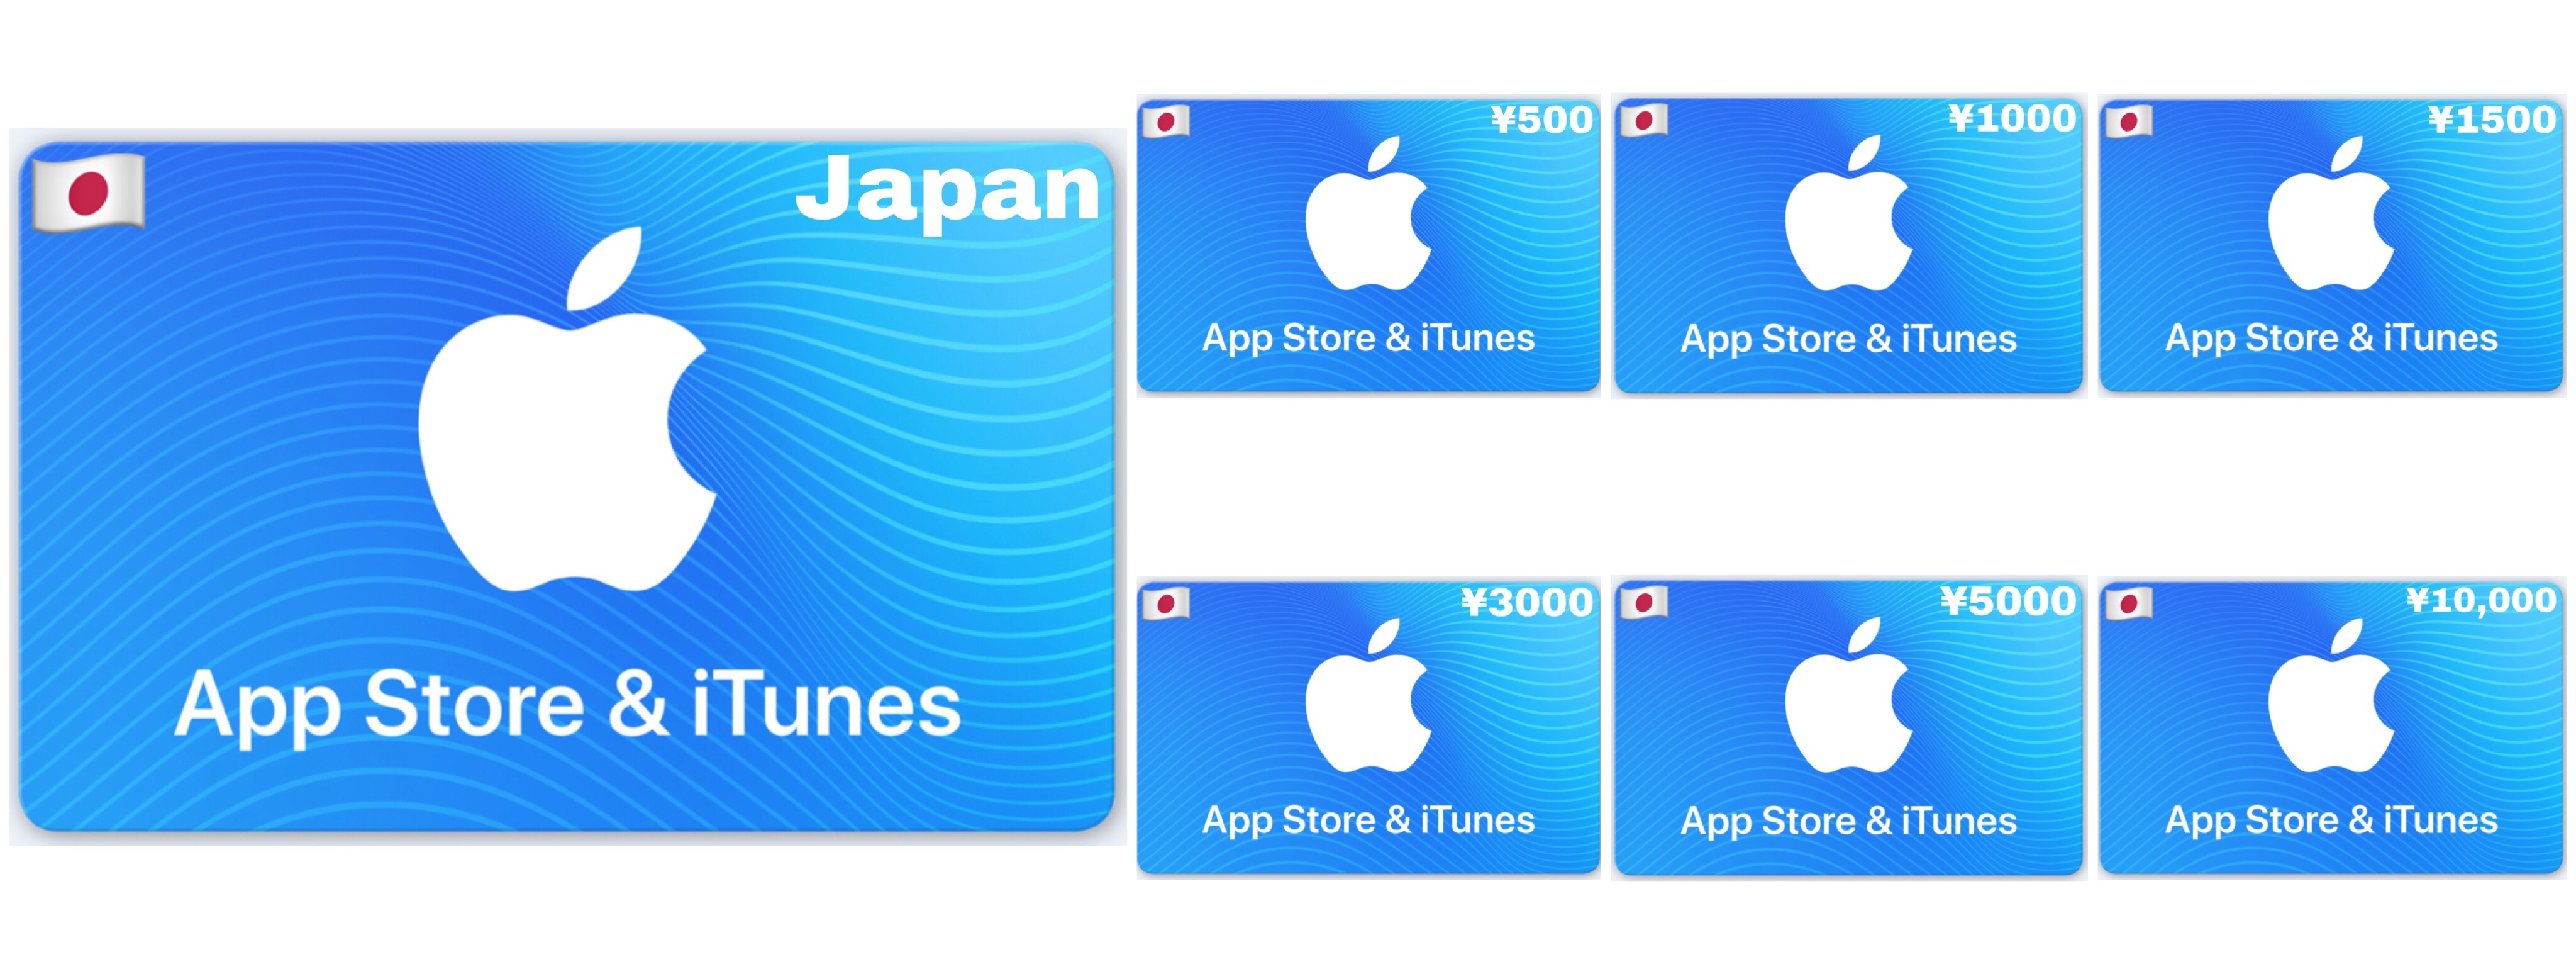 Apple App Store & iTunes Gift Card Japan ¥500 ¥1000 ¥1500 ¥3000 ¥5000 ¥10000